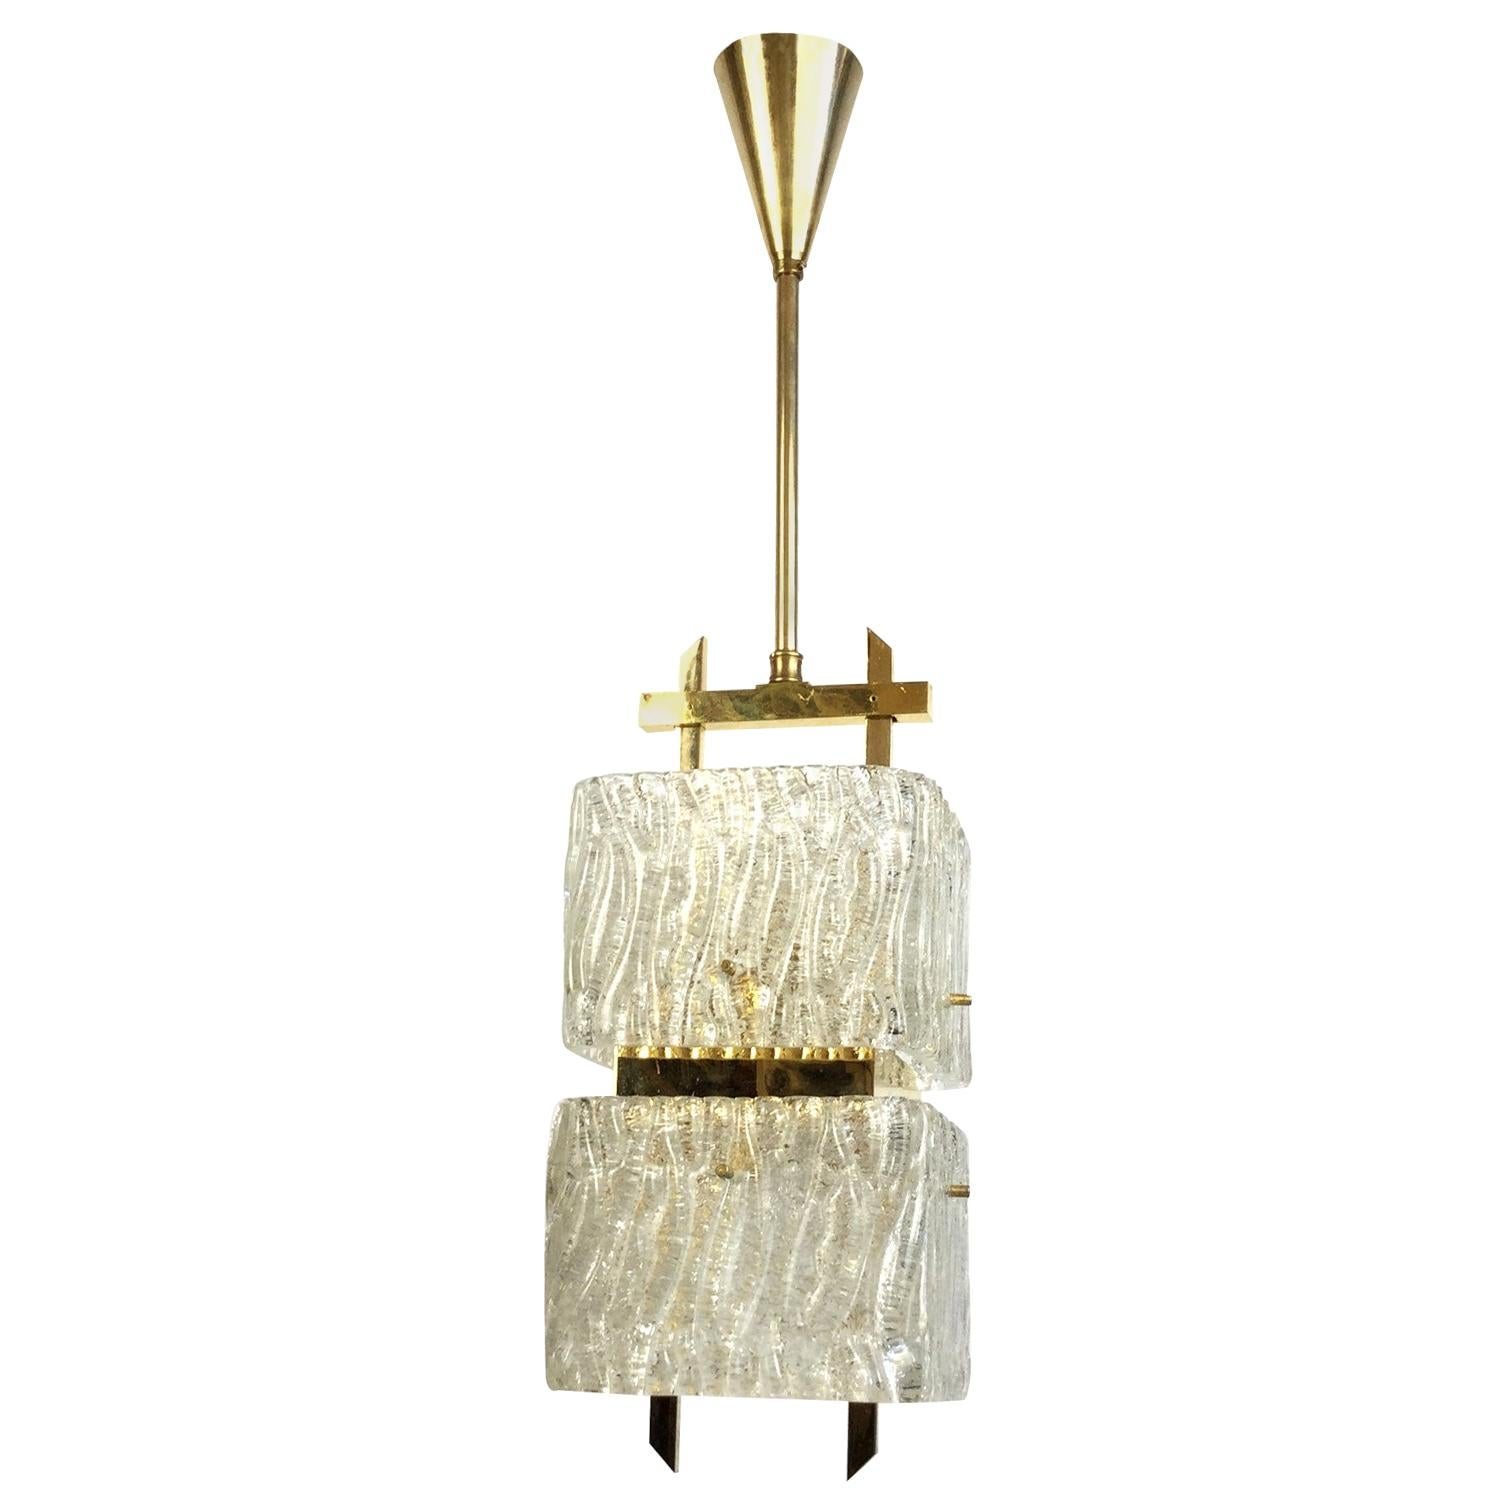 Maison Arlus Brass and Glass Chandelier France 1960s